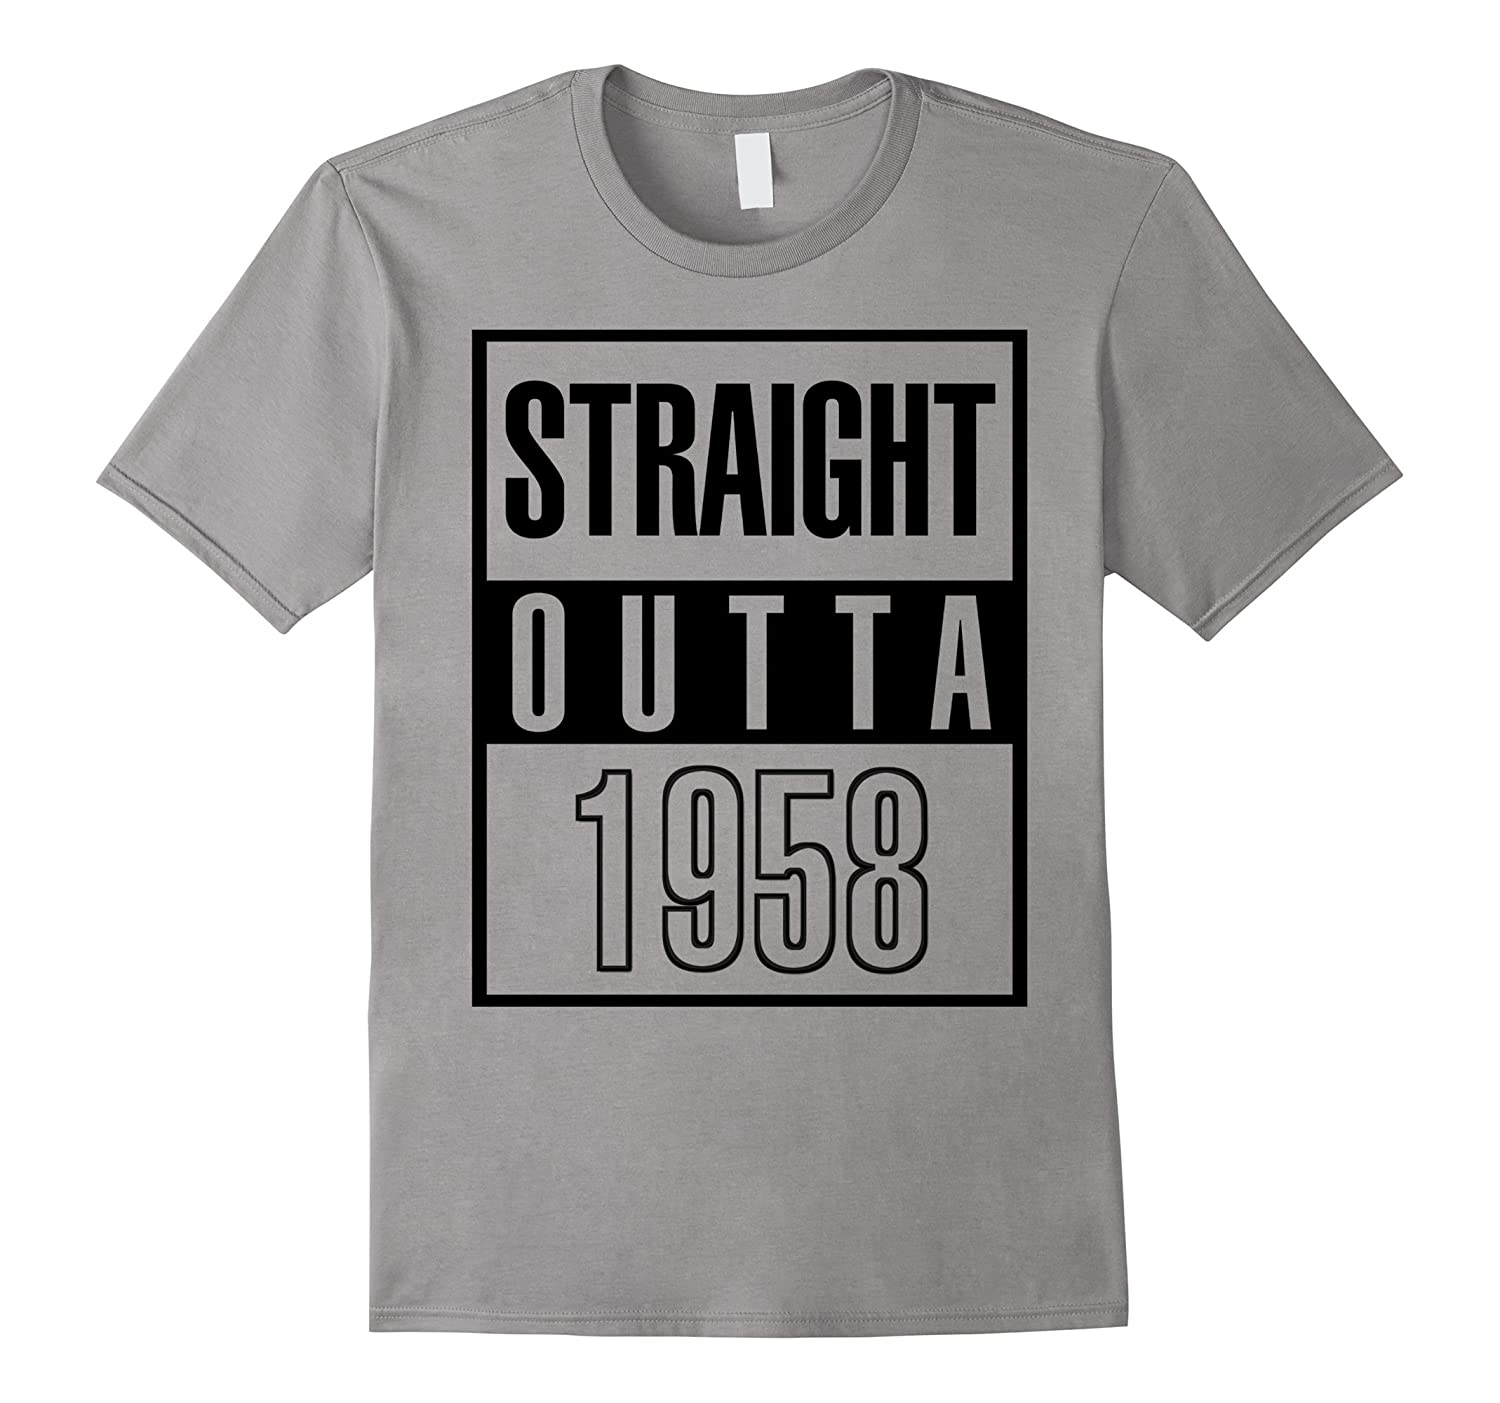 1958 59th Years Old Funny Birthday Gift T-Shirt-4LVS